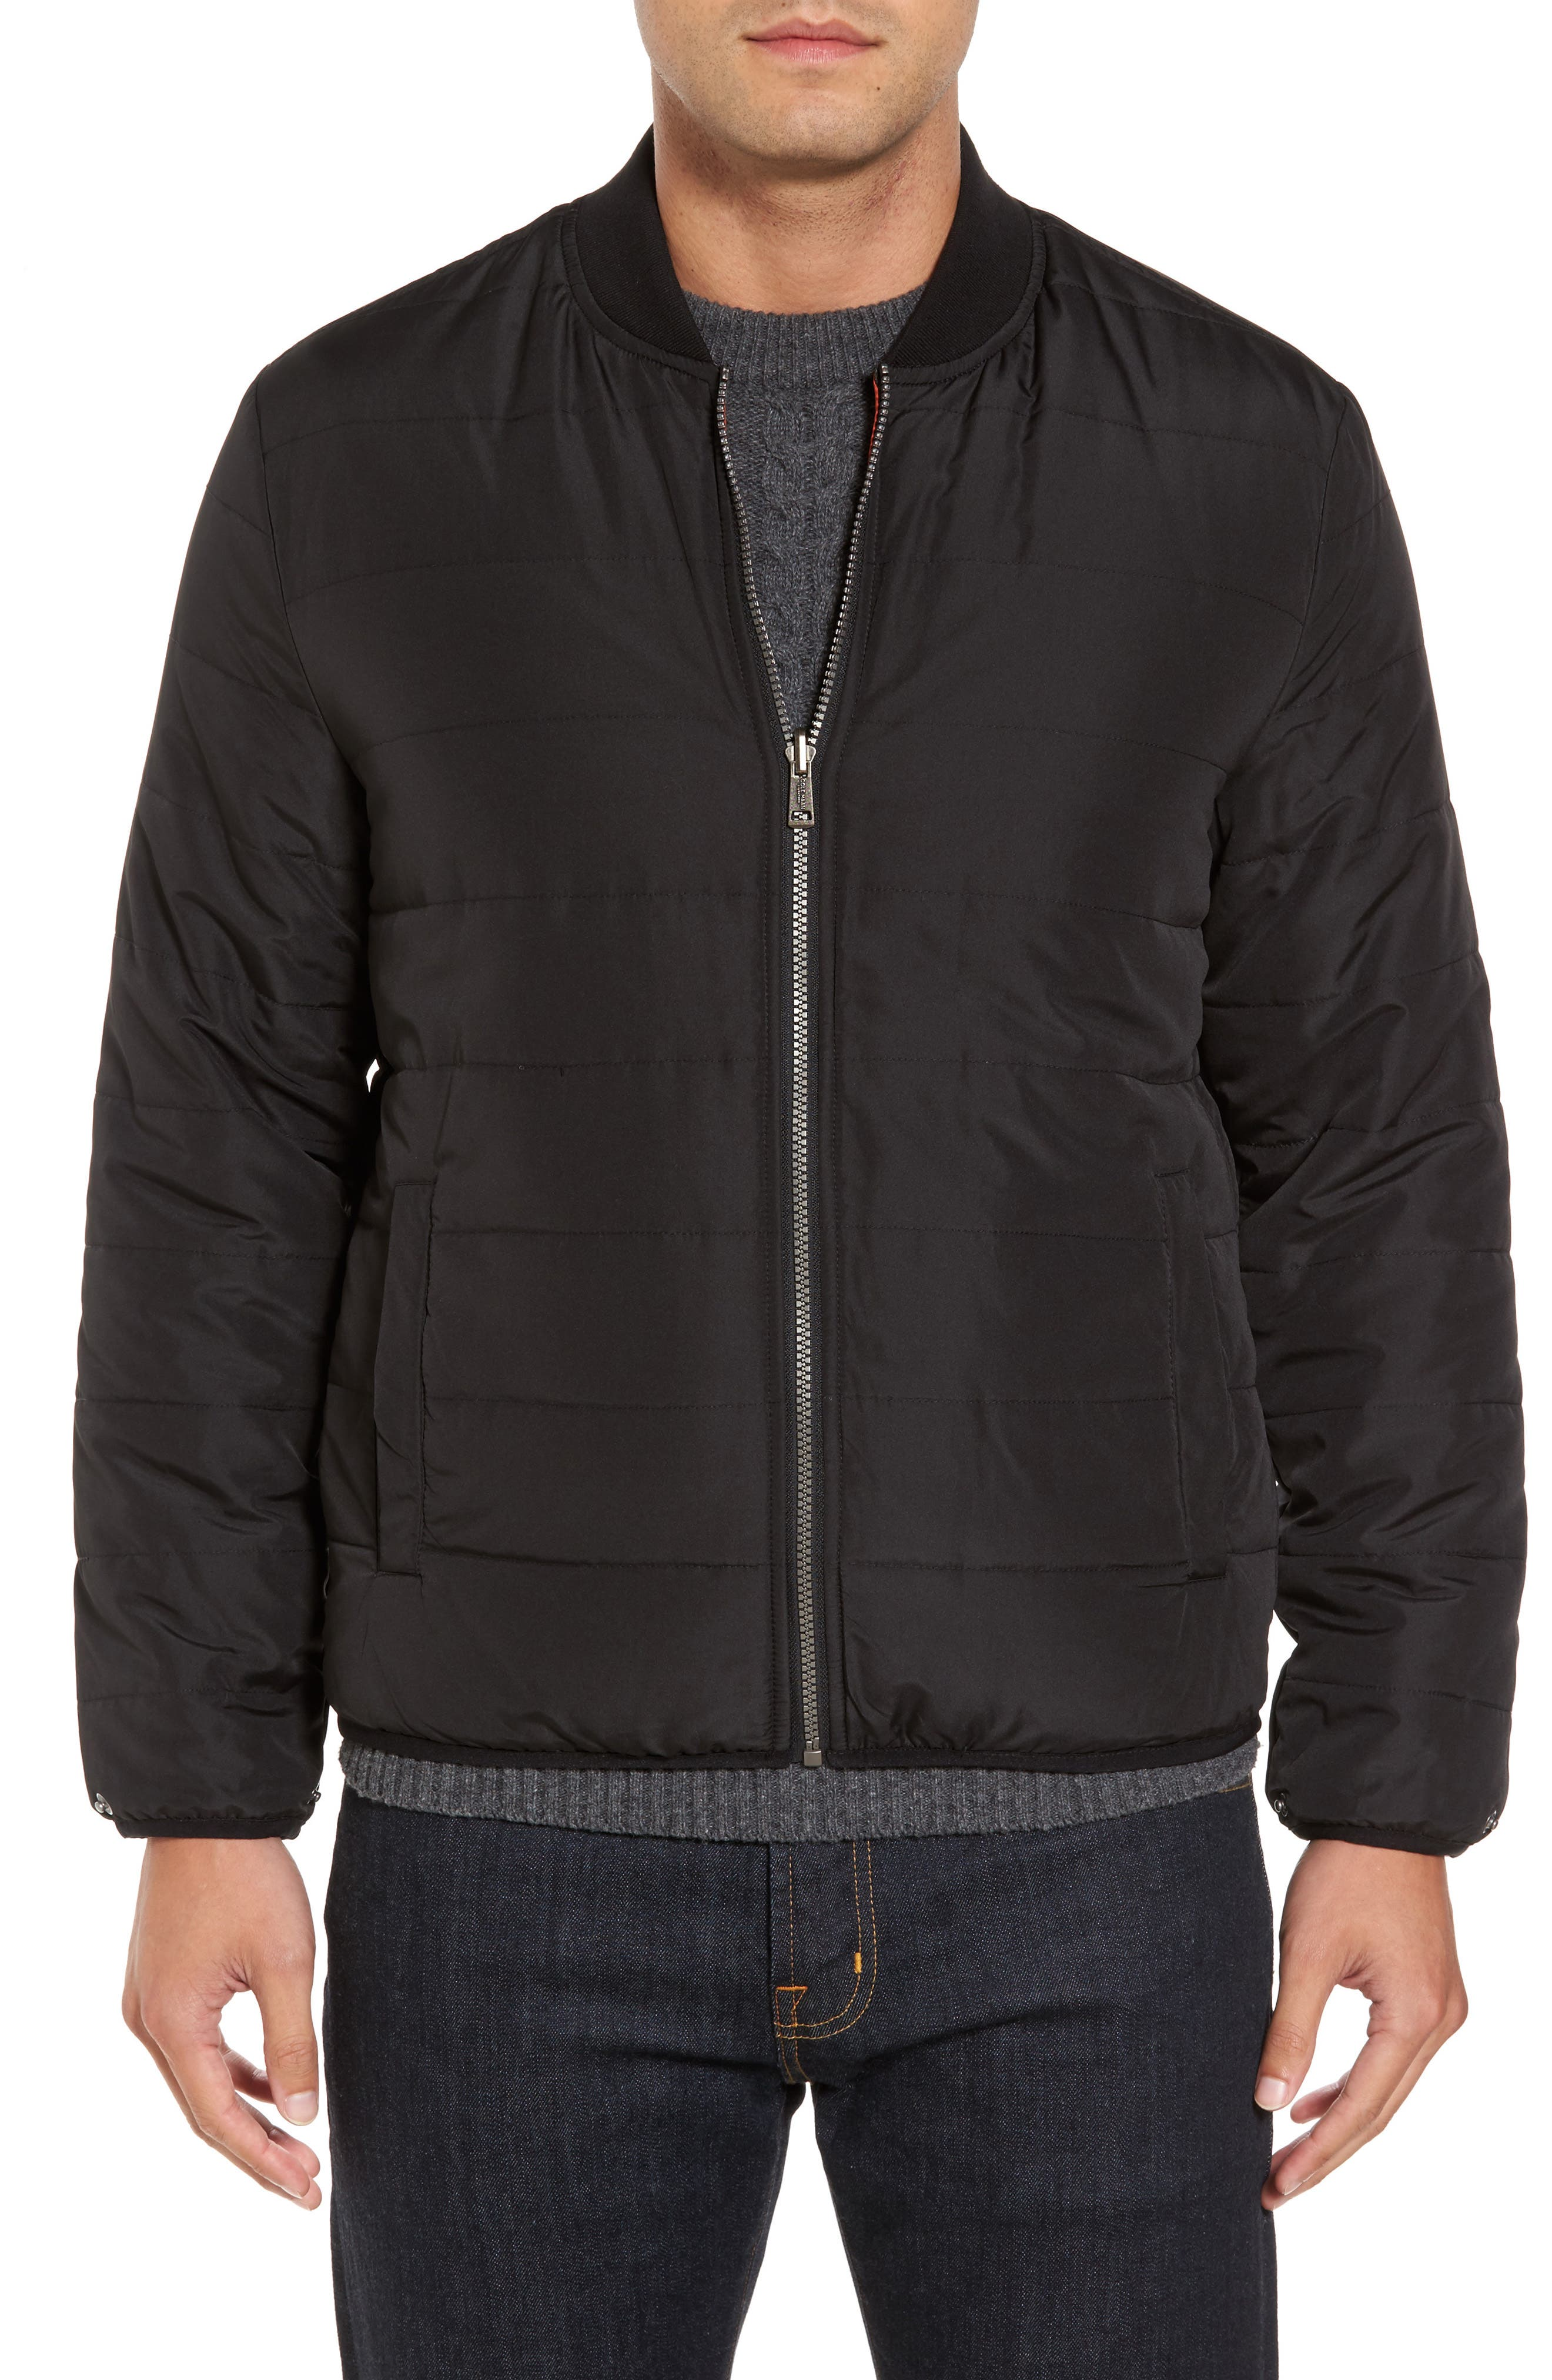 Coat with Removable Bomber Jacket,                             Alternate thumbnail 4, color,                             001